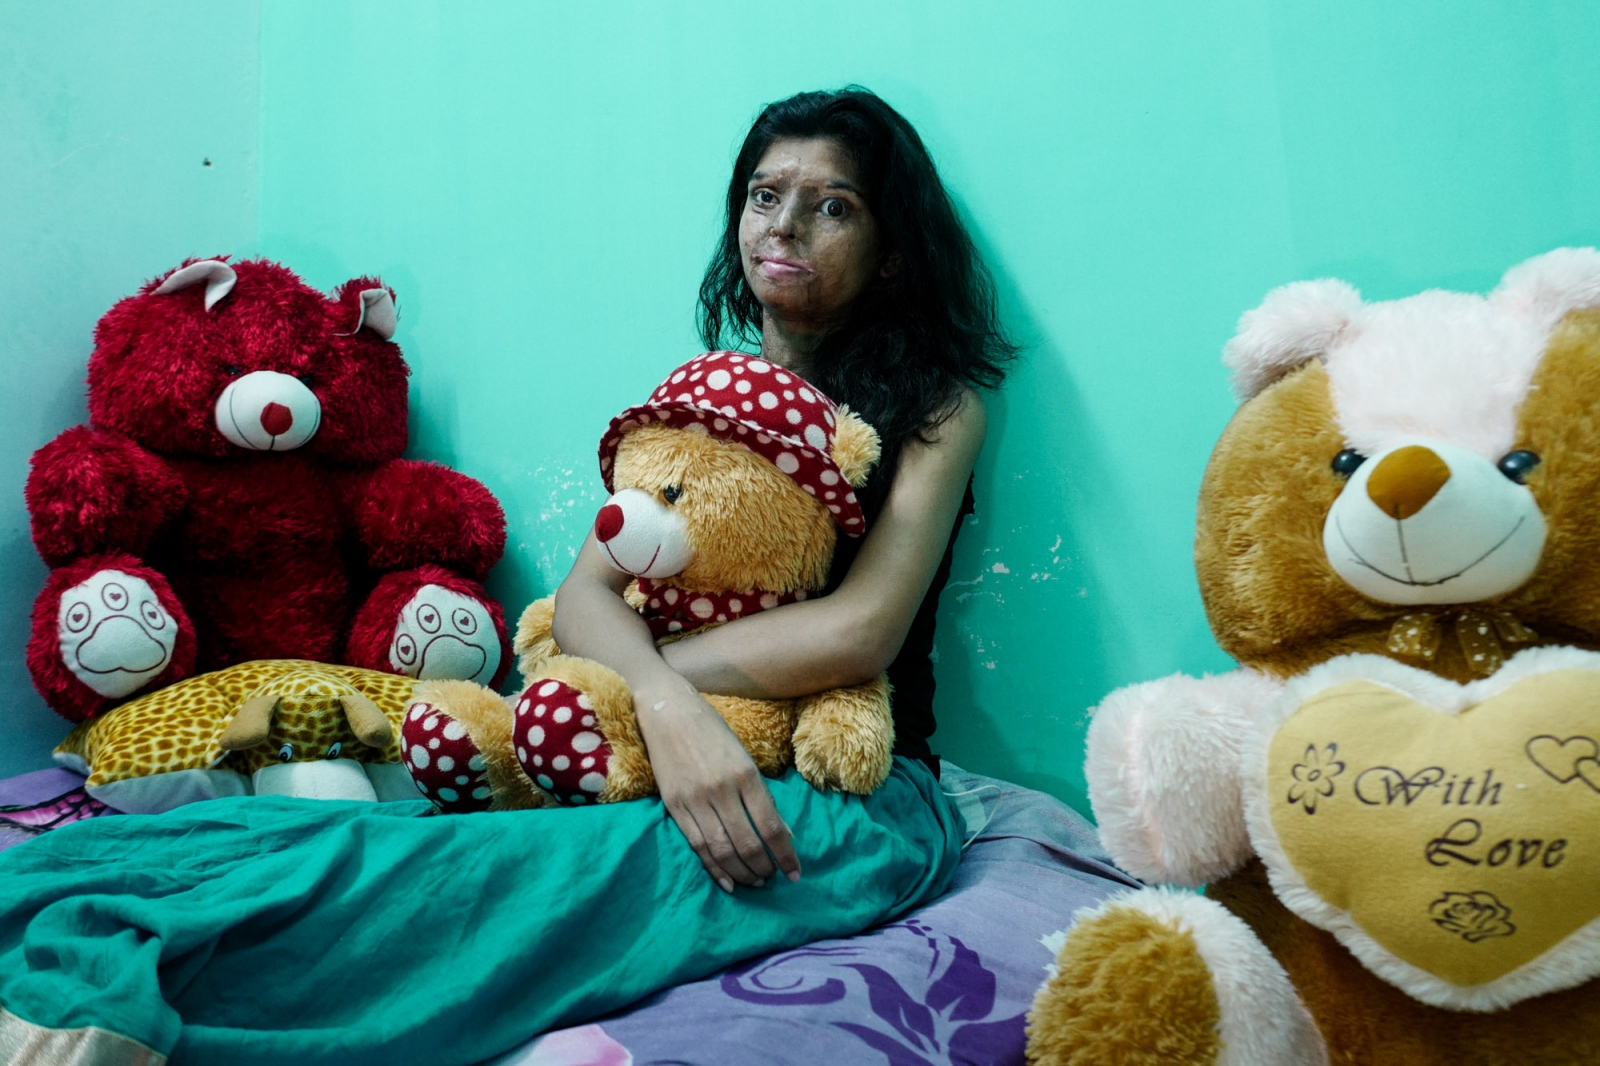 Agra, India 03 november 2015. Ritu, 20 years old, posing for a portrait holding the teddy bear. This is a present from other members of the Stop Acid Attack campaign, who also survived a similar aggression. The gift was given to her the day when her attacker was sentenced to life imprisonment. Ritu was victim of a plot orchestrated by 18 people. She was attacked in the street by two boys riding a motorbike when she was 17. They were paid by her cousin, because of a dispute between two families for the ownership of some land. She used to play volleyball for the State team but now that she's blind from left side, she cannot play anymore.